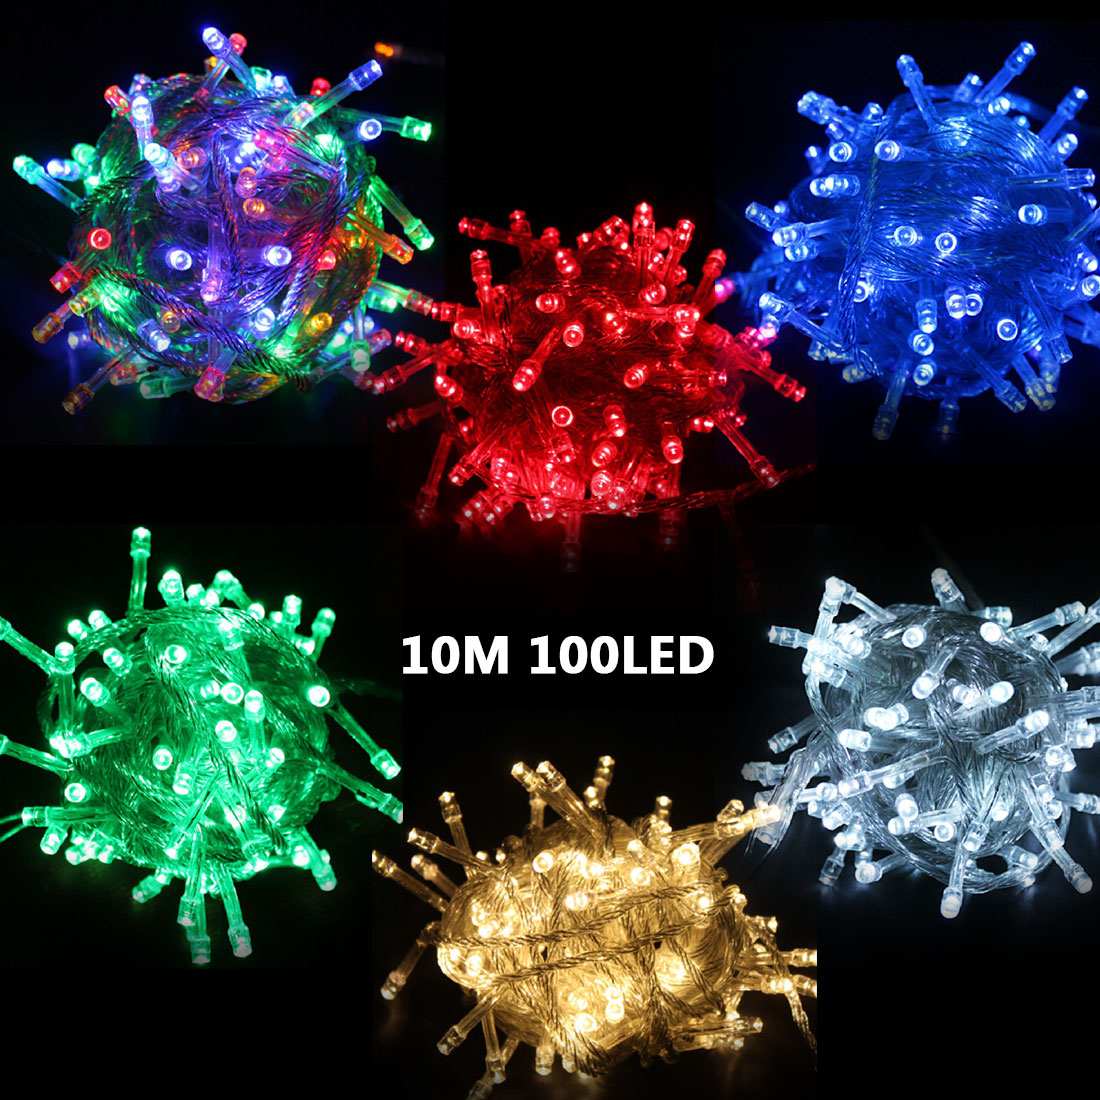 Great 10M Waterproof String Fairy Light Christmas Xmas Party Light Eu Plug Decoration Waterproof 220V 100 Leds Light(China (Mainland))